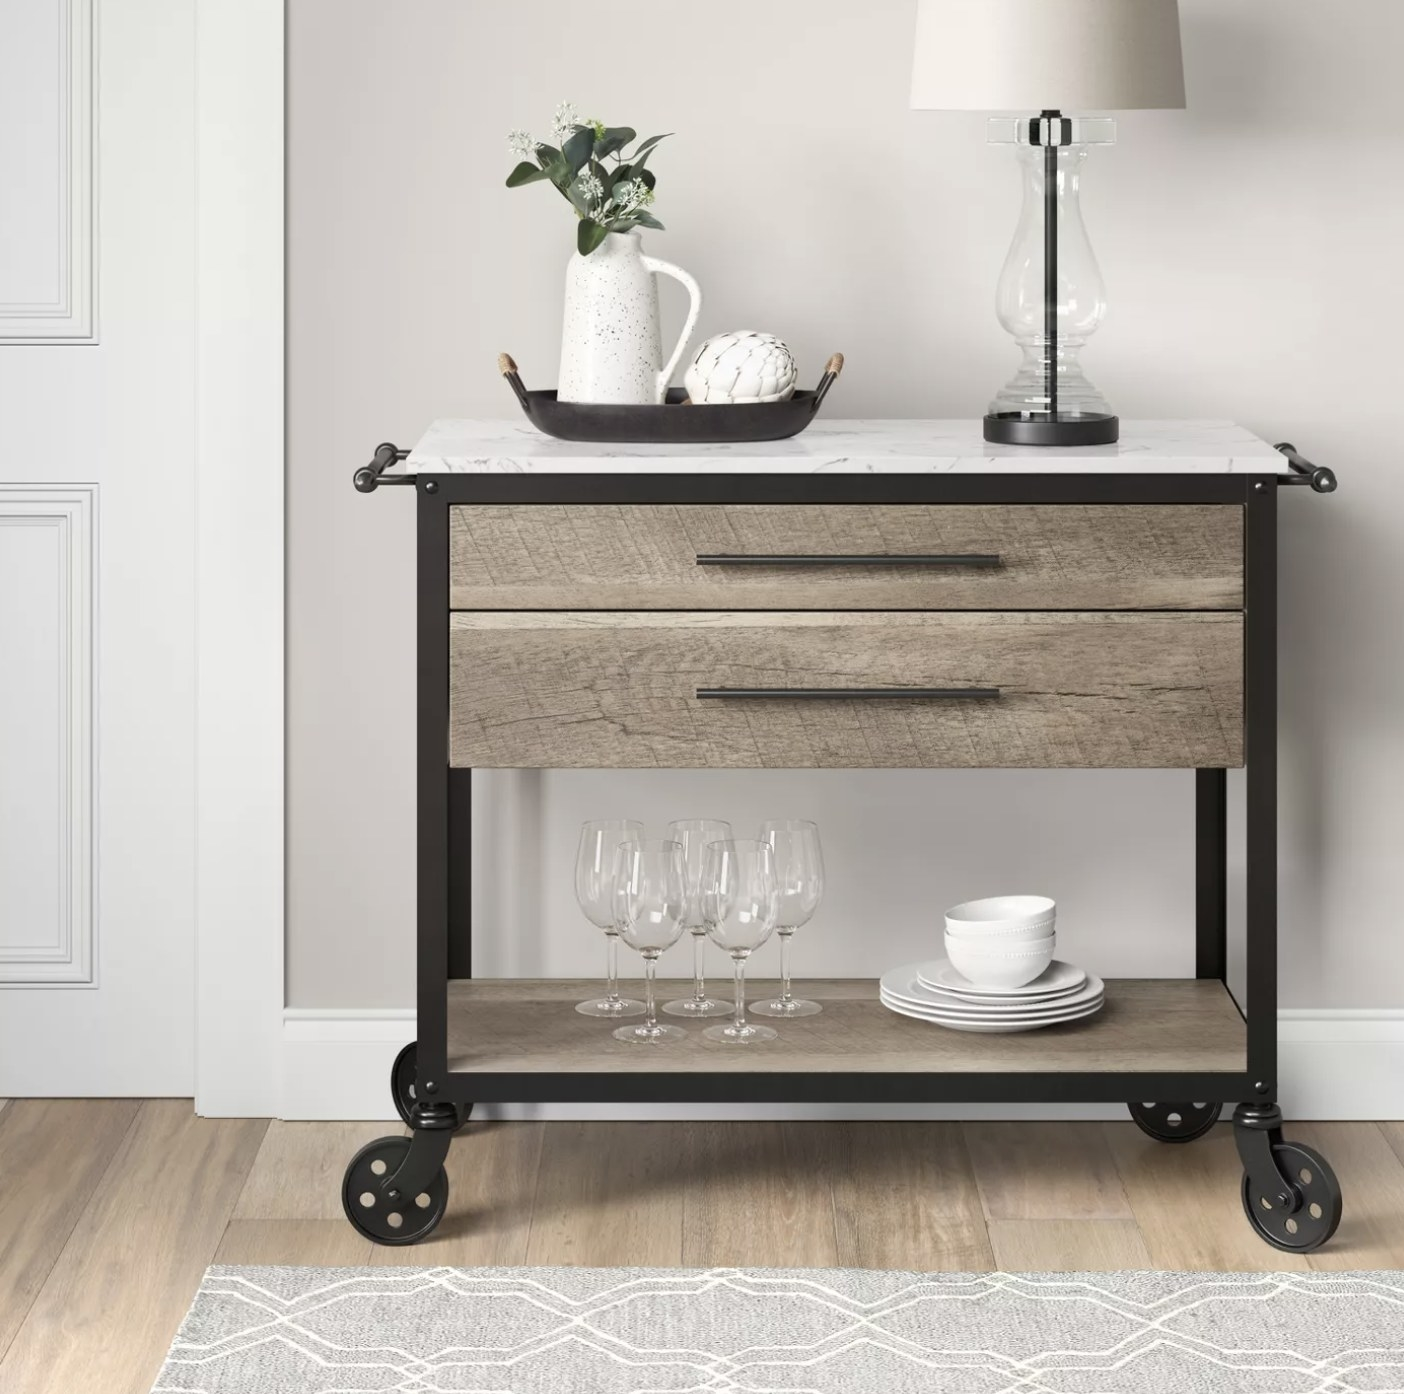 A birchwood colored cart with a black metal frame and caster wheels and a white marble top